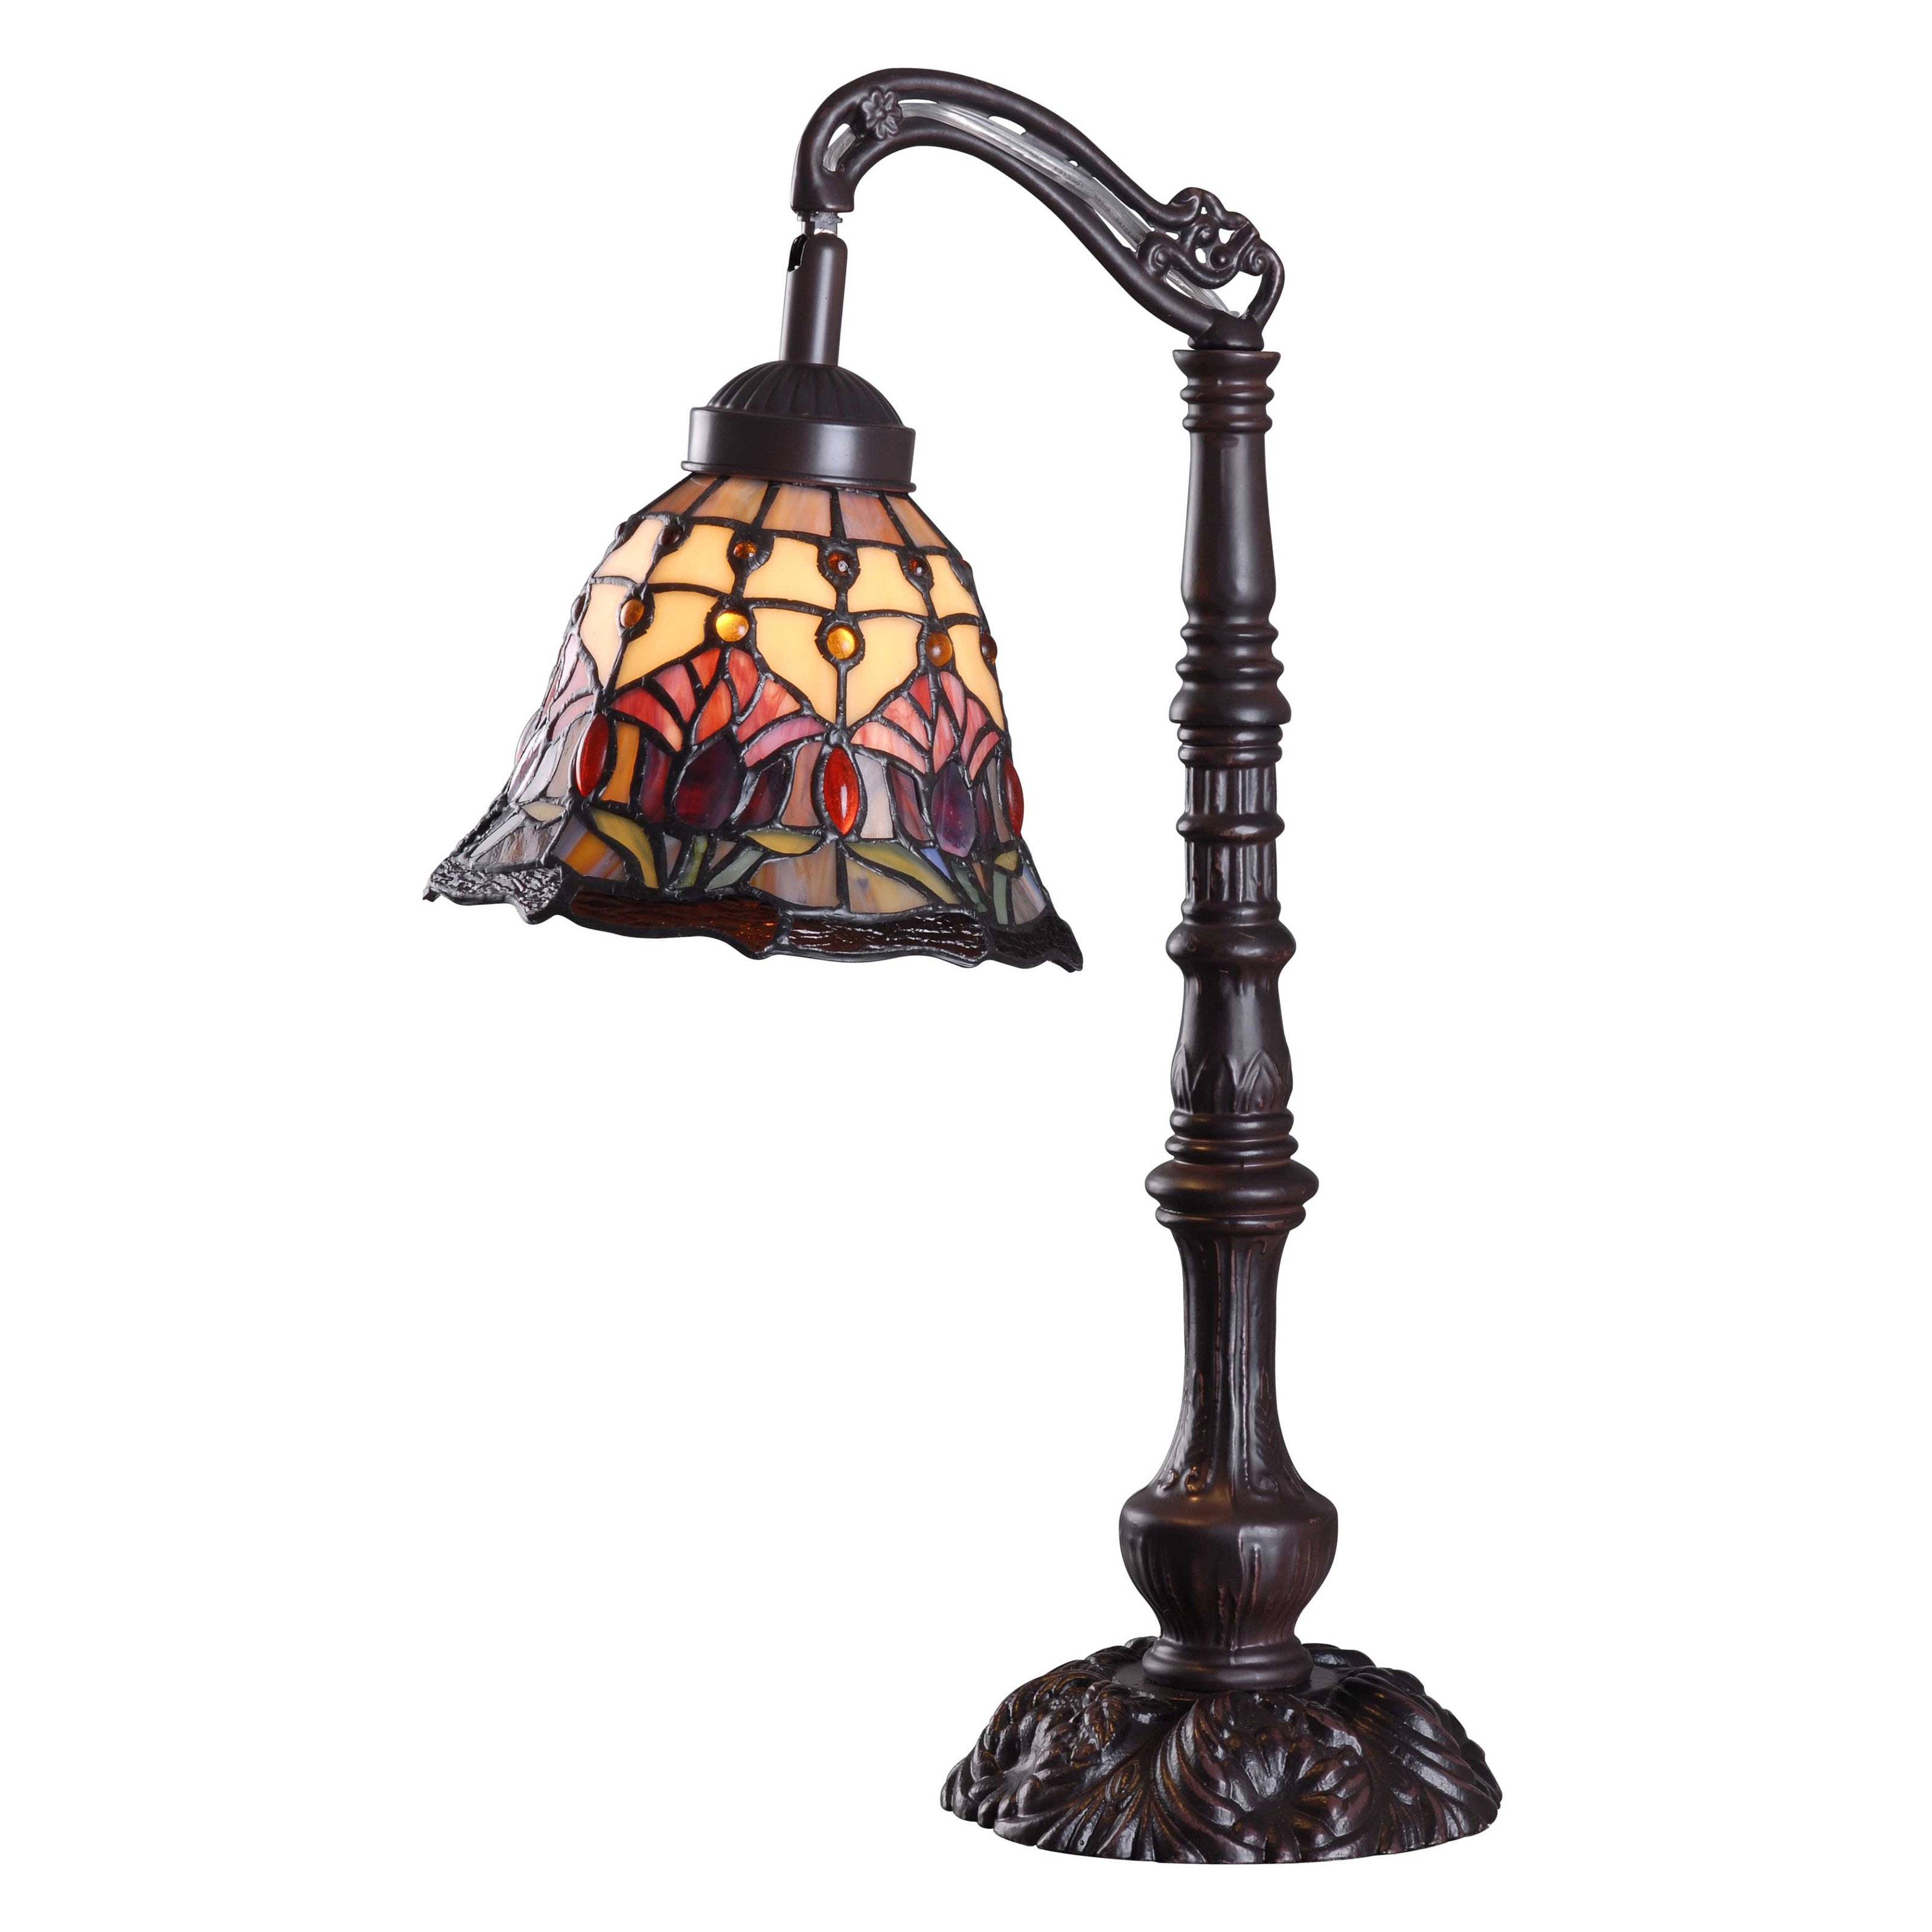 Kenroy Home Floret Table Lamp, Multicolored Stained Glass...